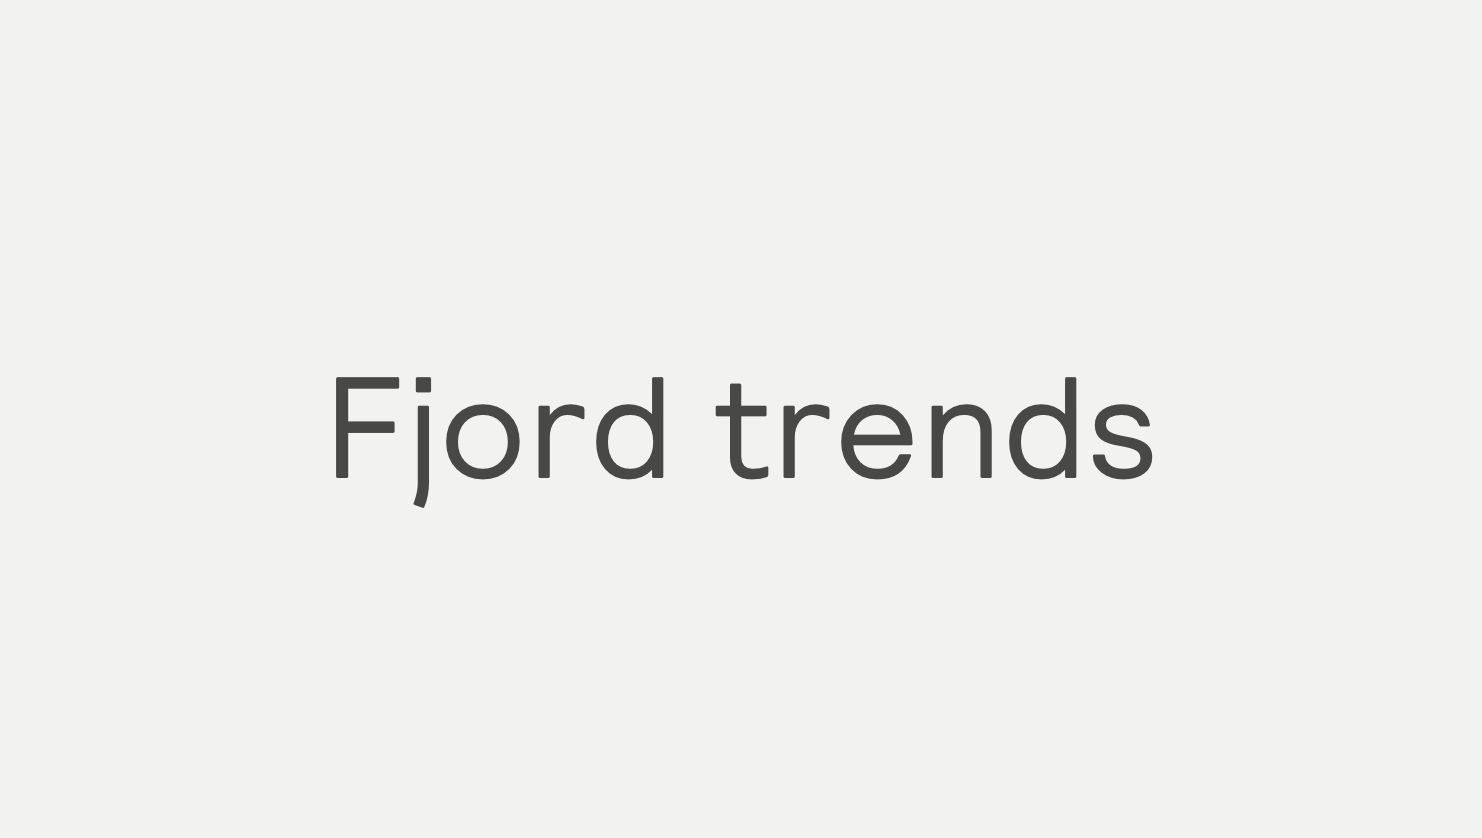 Fjord trends